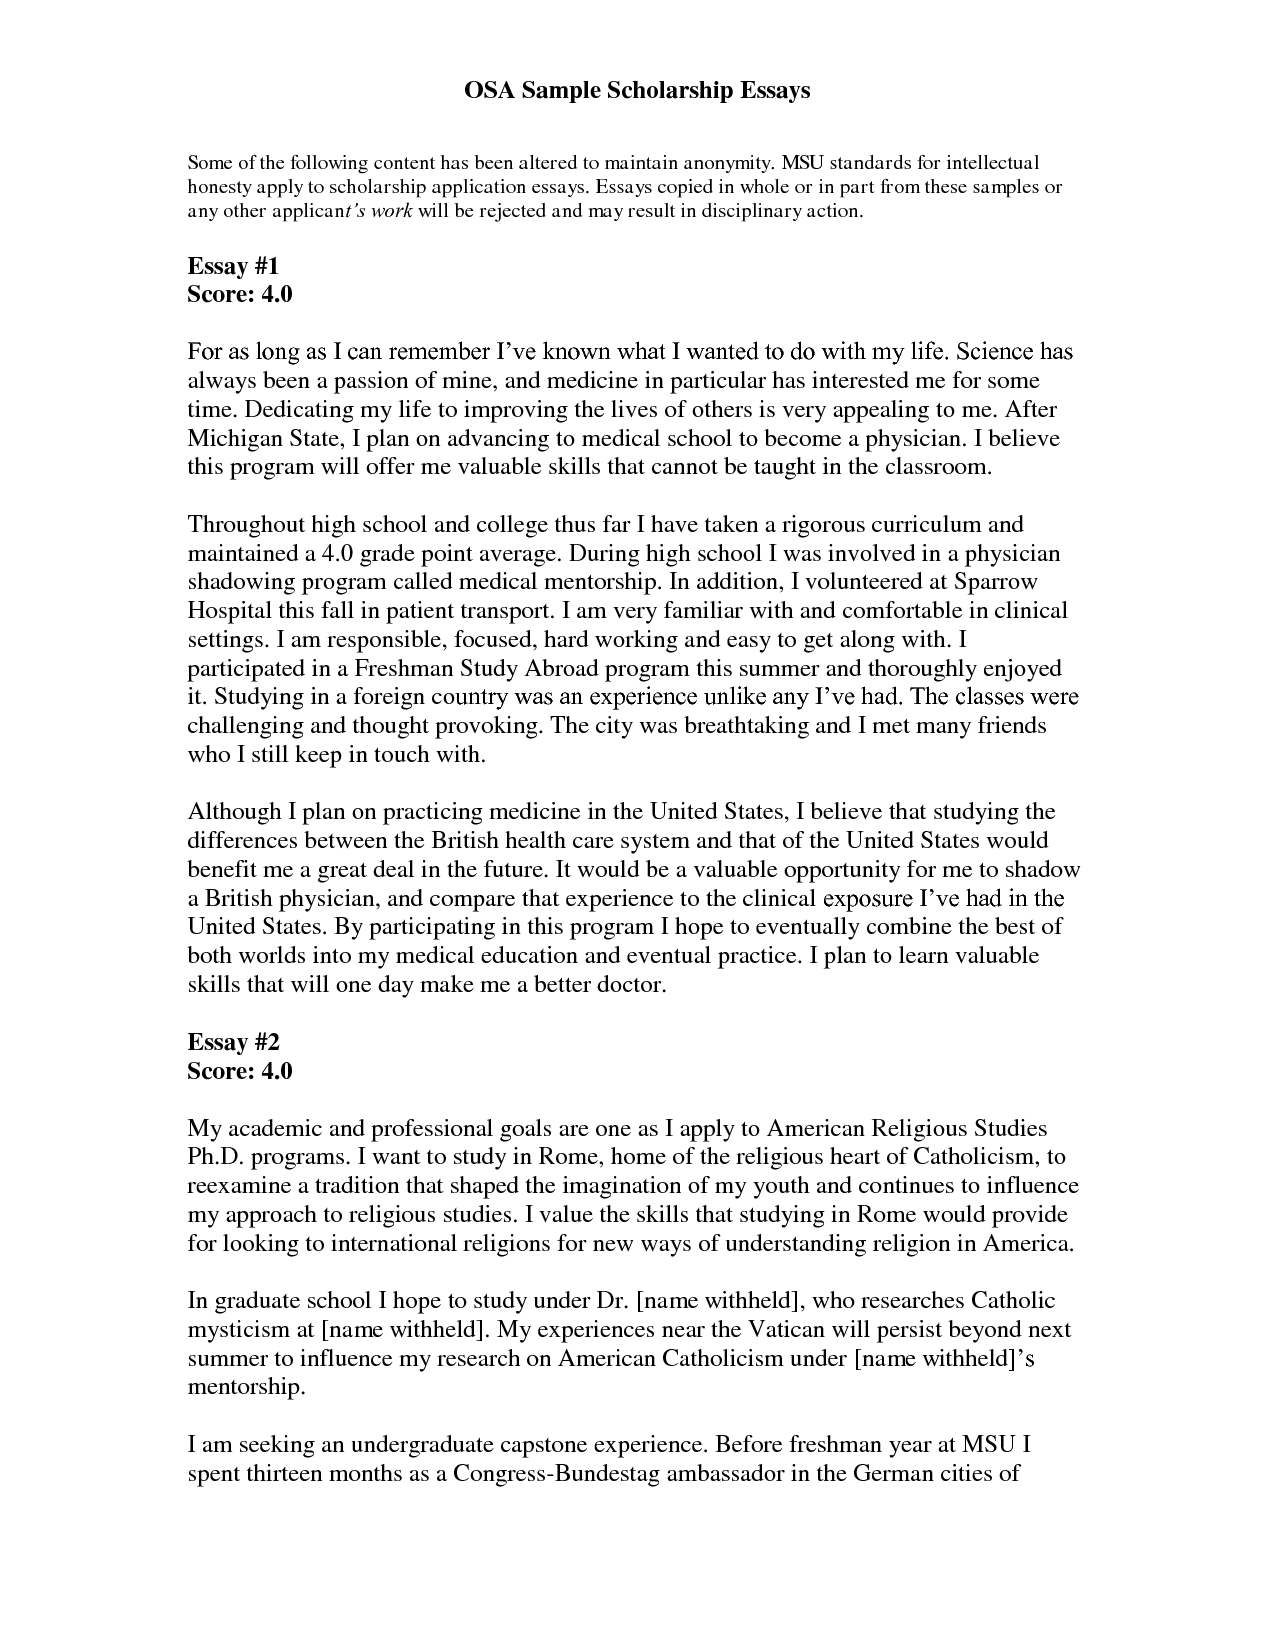 cover letter examples for scholarships